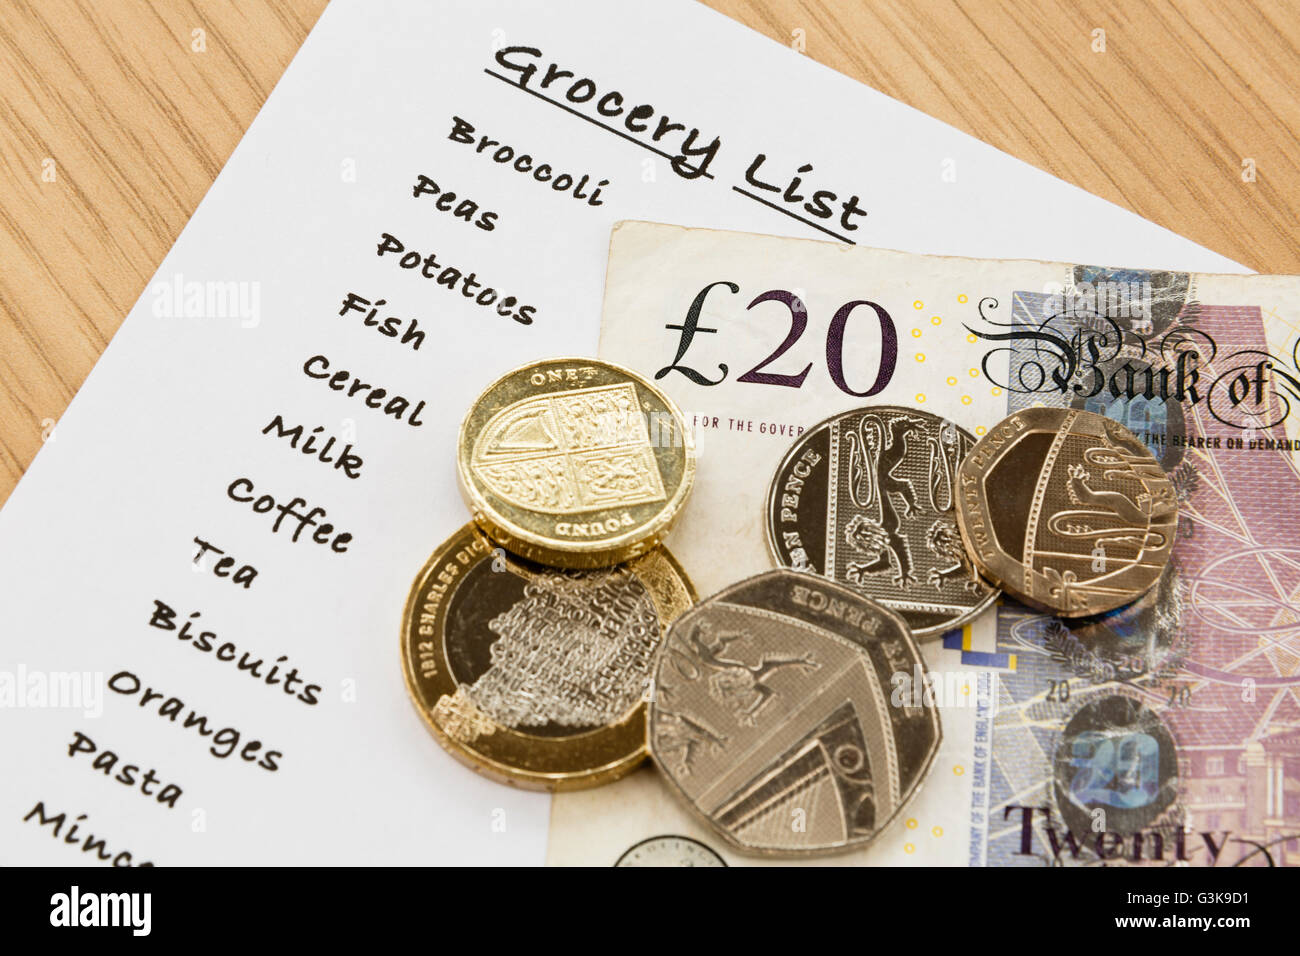 Shopping list for groceries with sterling money cash from above. England, UK, Britain Stock Photo